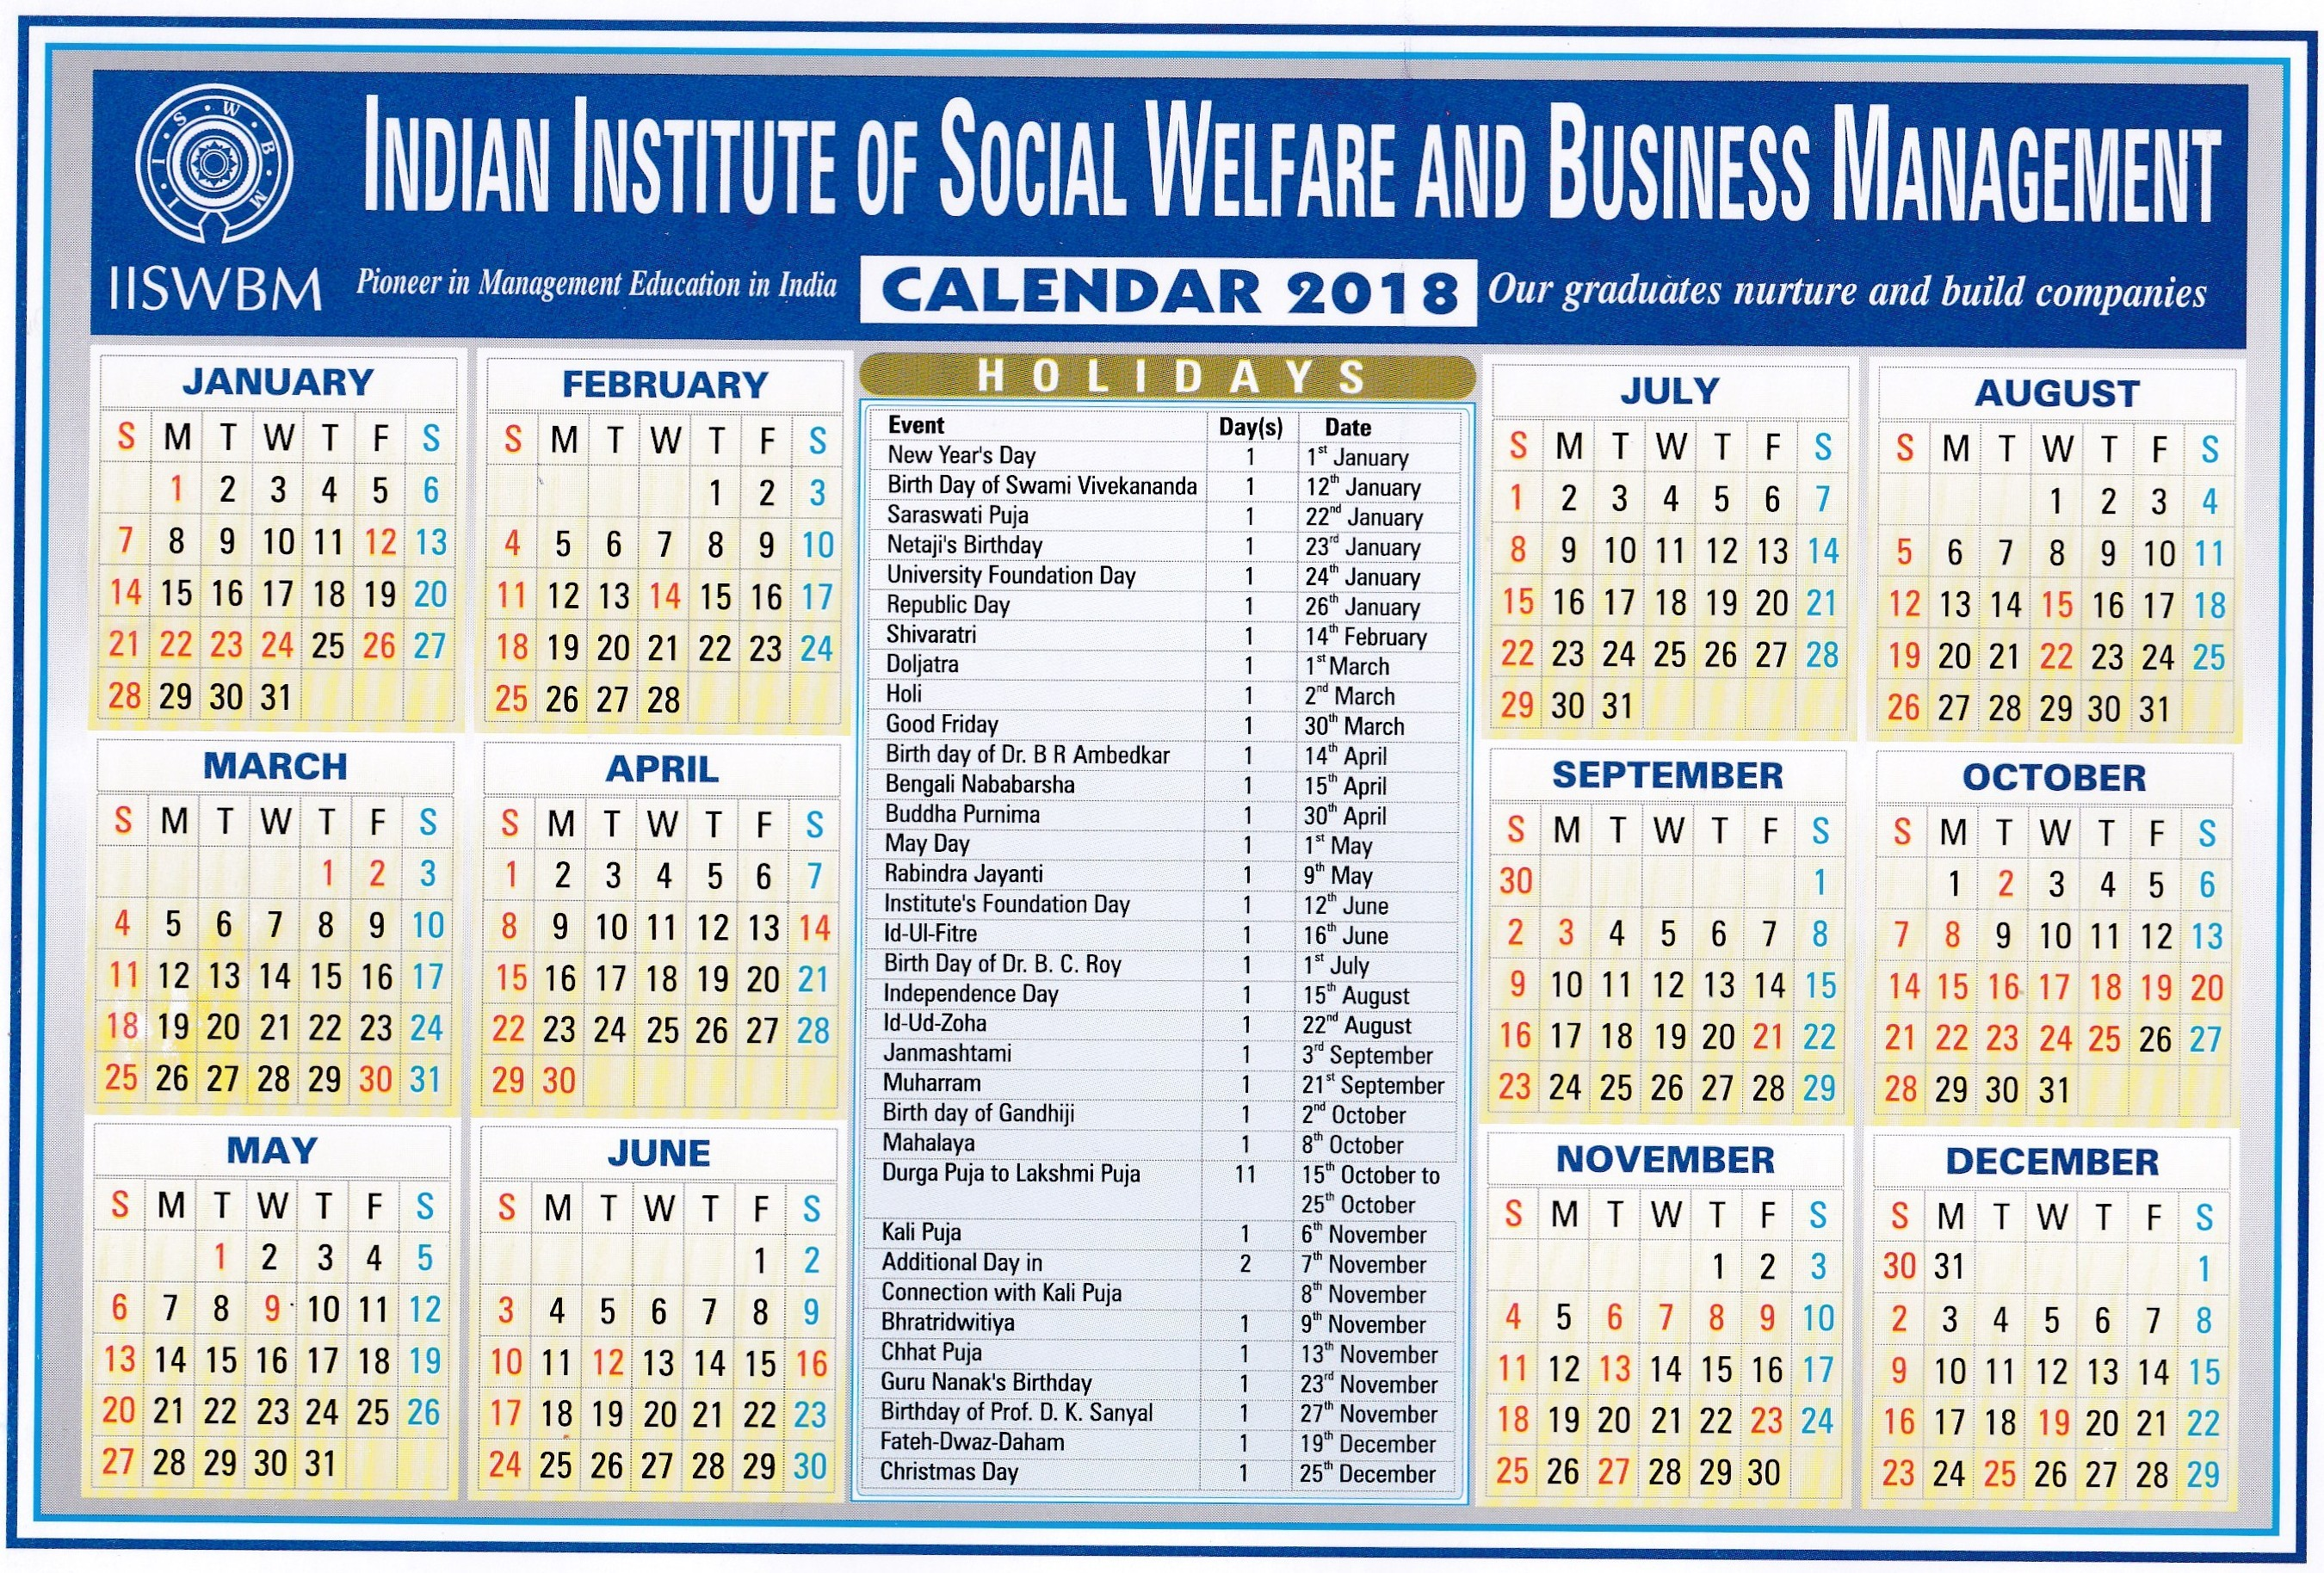 2019 March Calendar Telugu Actual April 2019 Hindu Calendar Iiswbm – Calendar Online 2019 Of 2019 March Calendar Telugu Más Populares 12 Month Calendar 2019